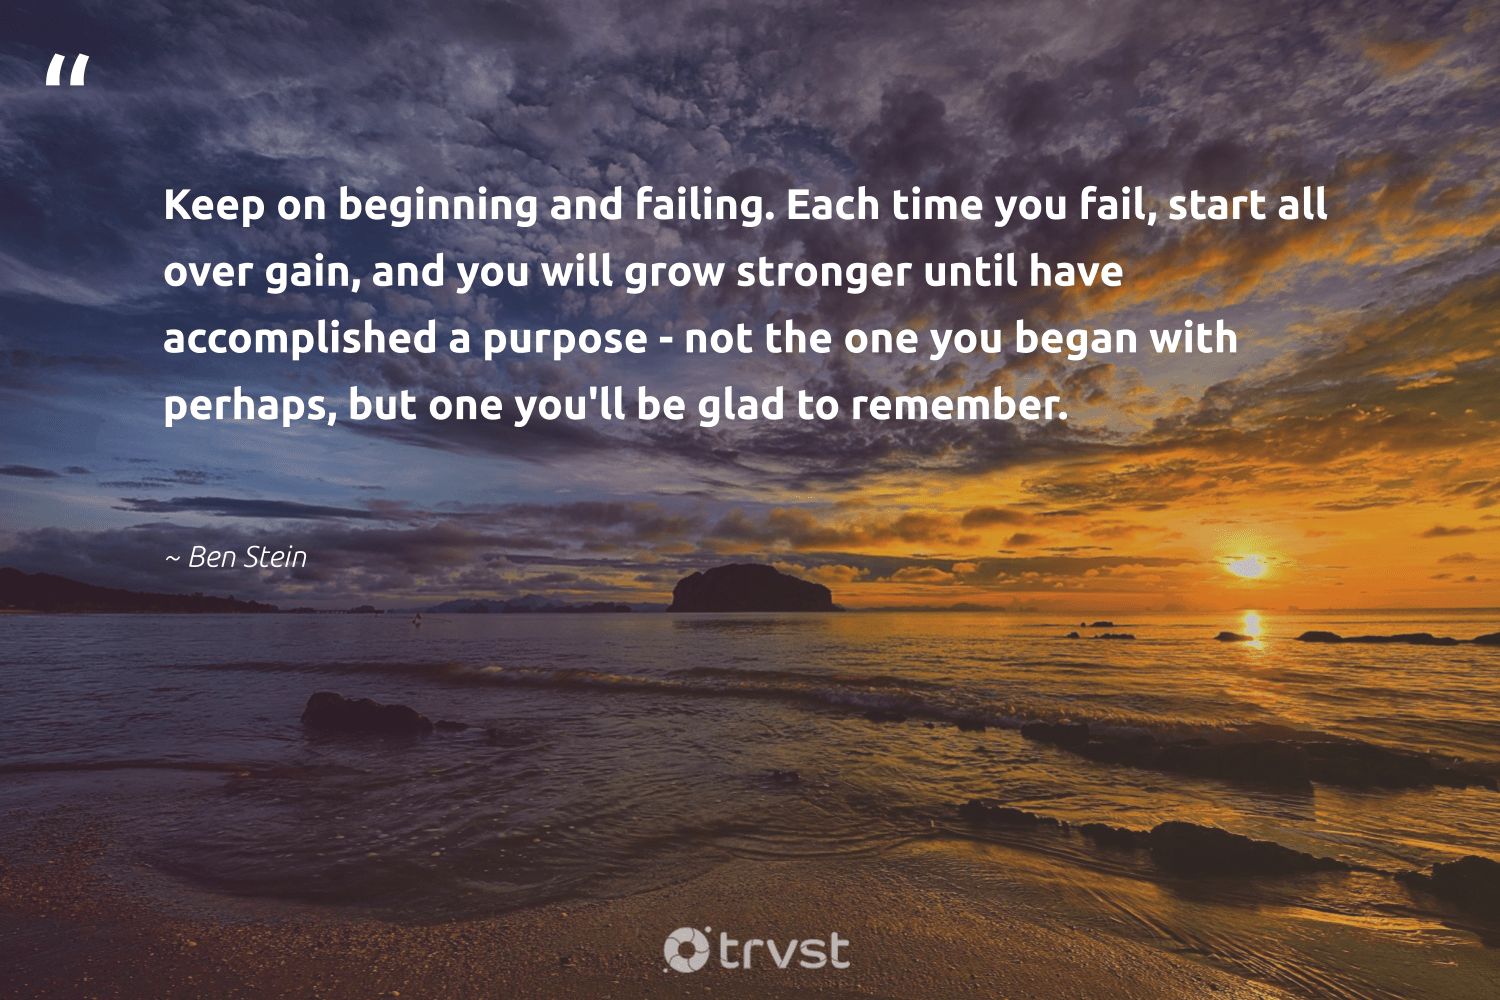 """""""Keep on beginning and failing. Each time you fail, start all over gain, and you will grow stronger until have accomplished a purpose - not the one you began with perhaps, but one you'll be glad to remember.""""  - Ben Stein #trvst #quotes #purpose #findpurpose #changemakers #begreat #planetearthfirst #findingpupose #mindset #nevergiveup #beinspired #purposedriven"""